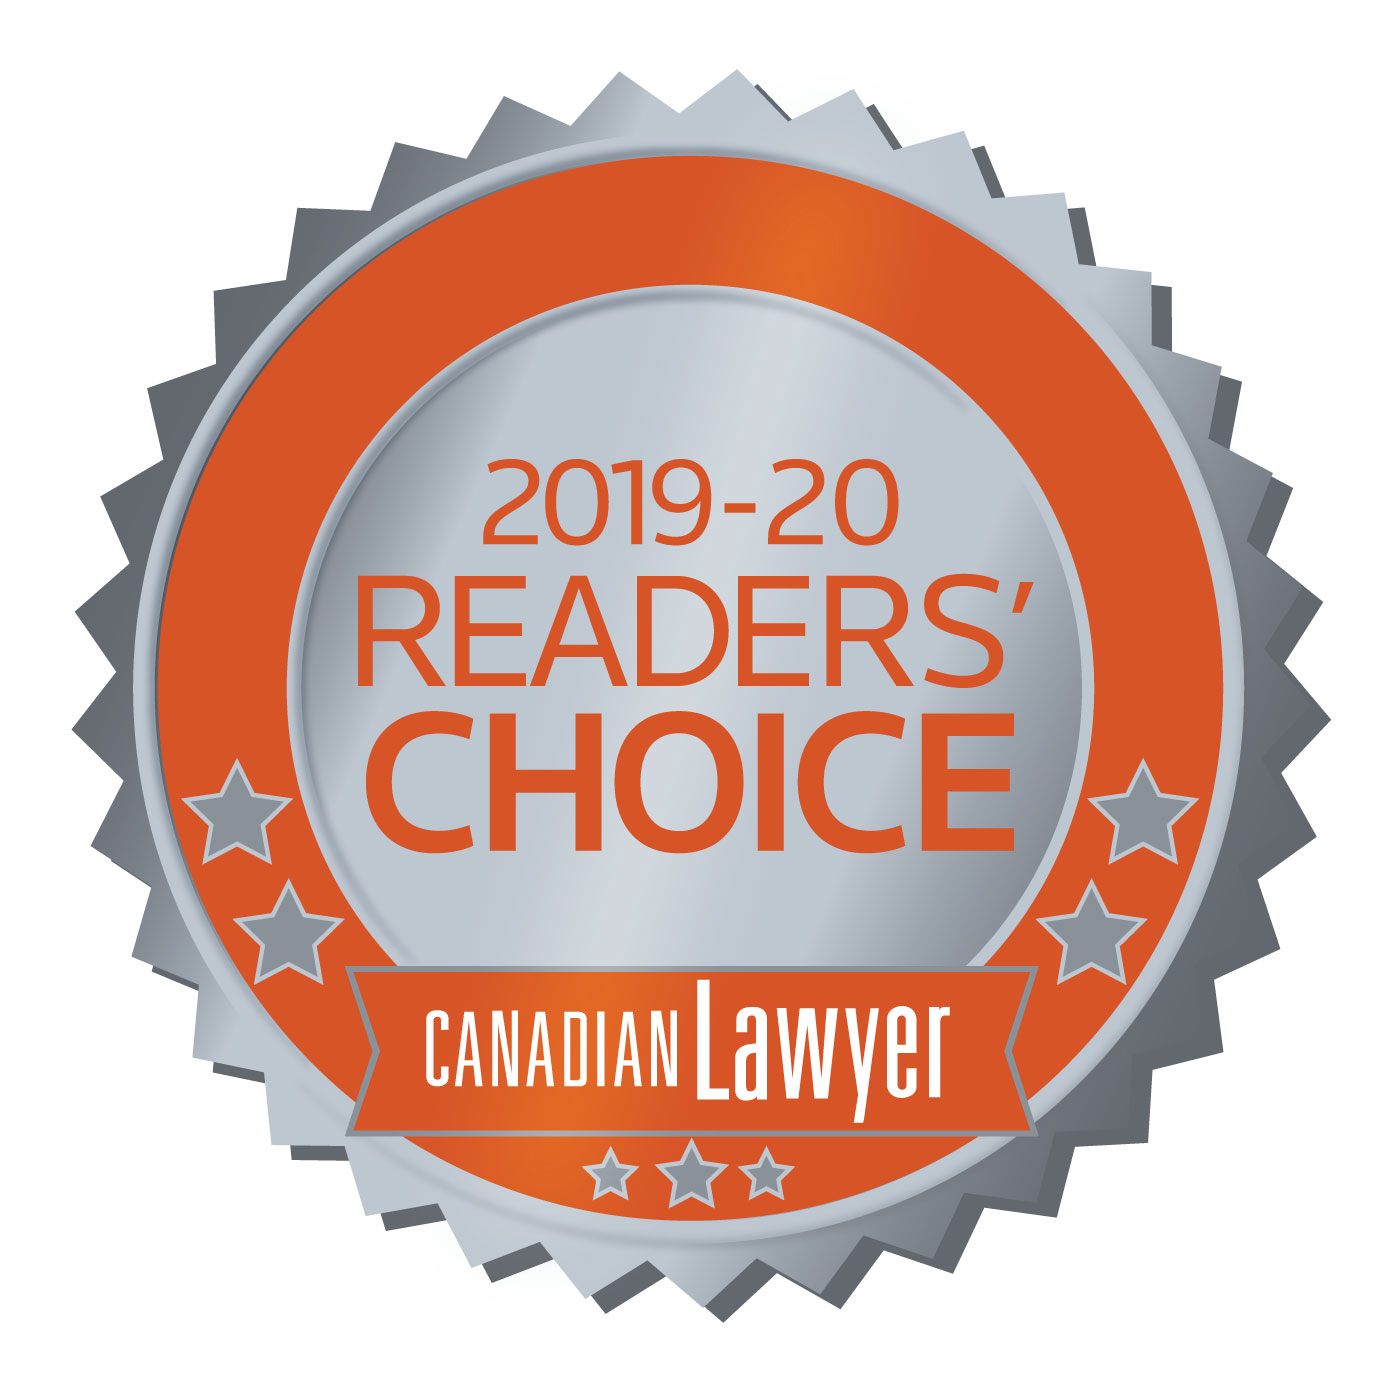 Canadian Lawyer Readers Choice